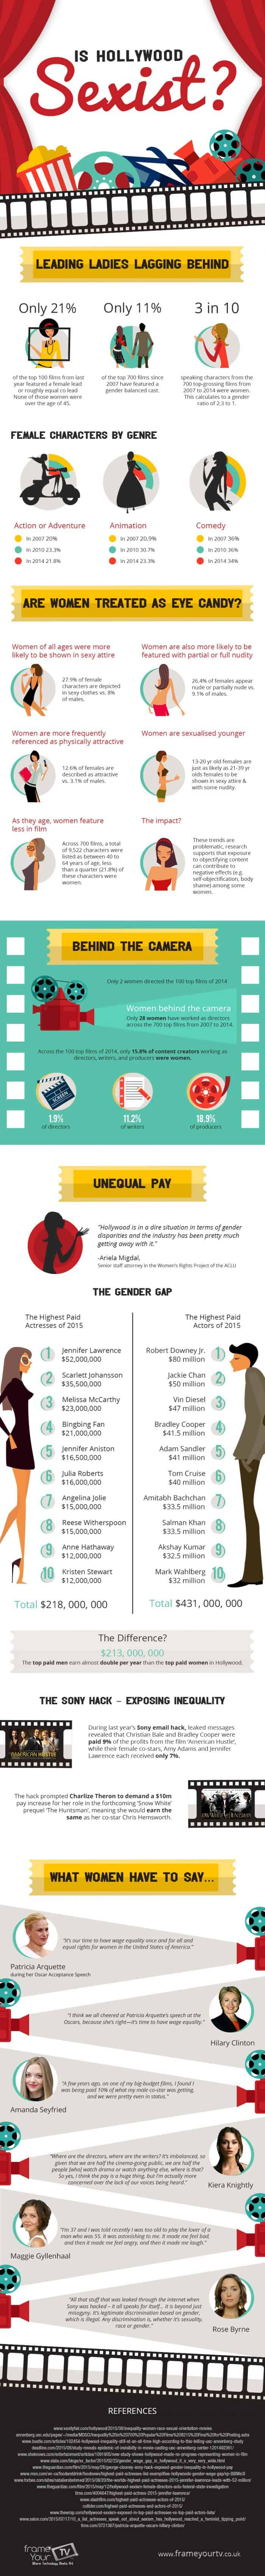 is-hollywood-sexist-infographic